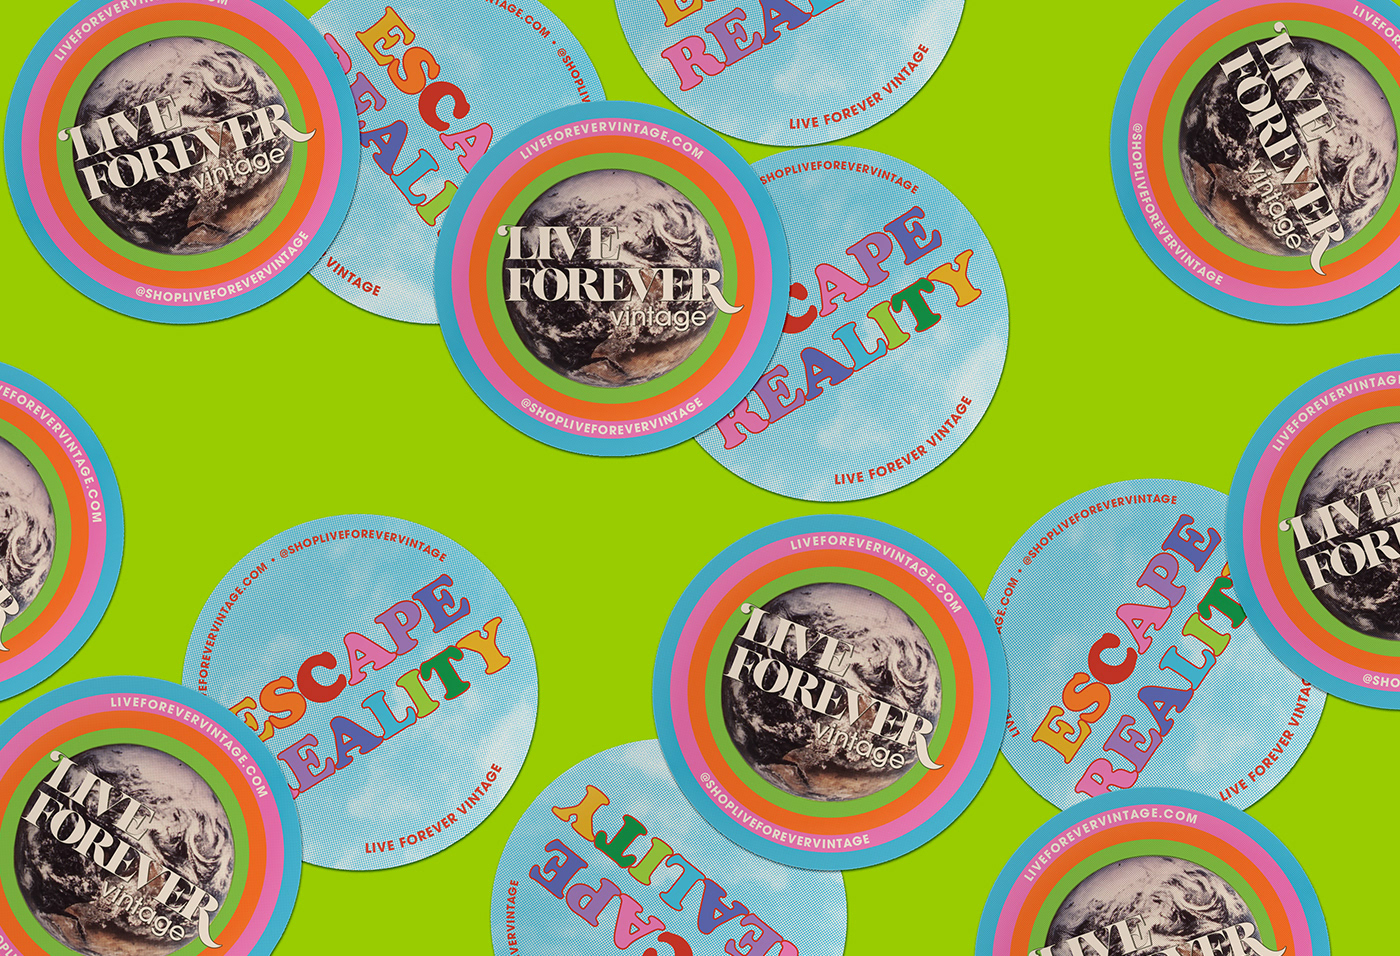 Stickers scattered on a lime green background